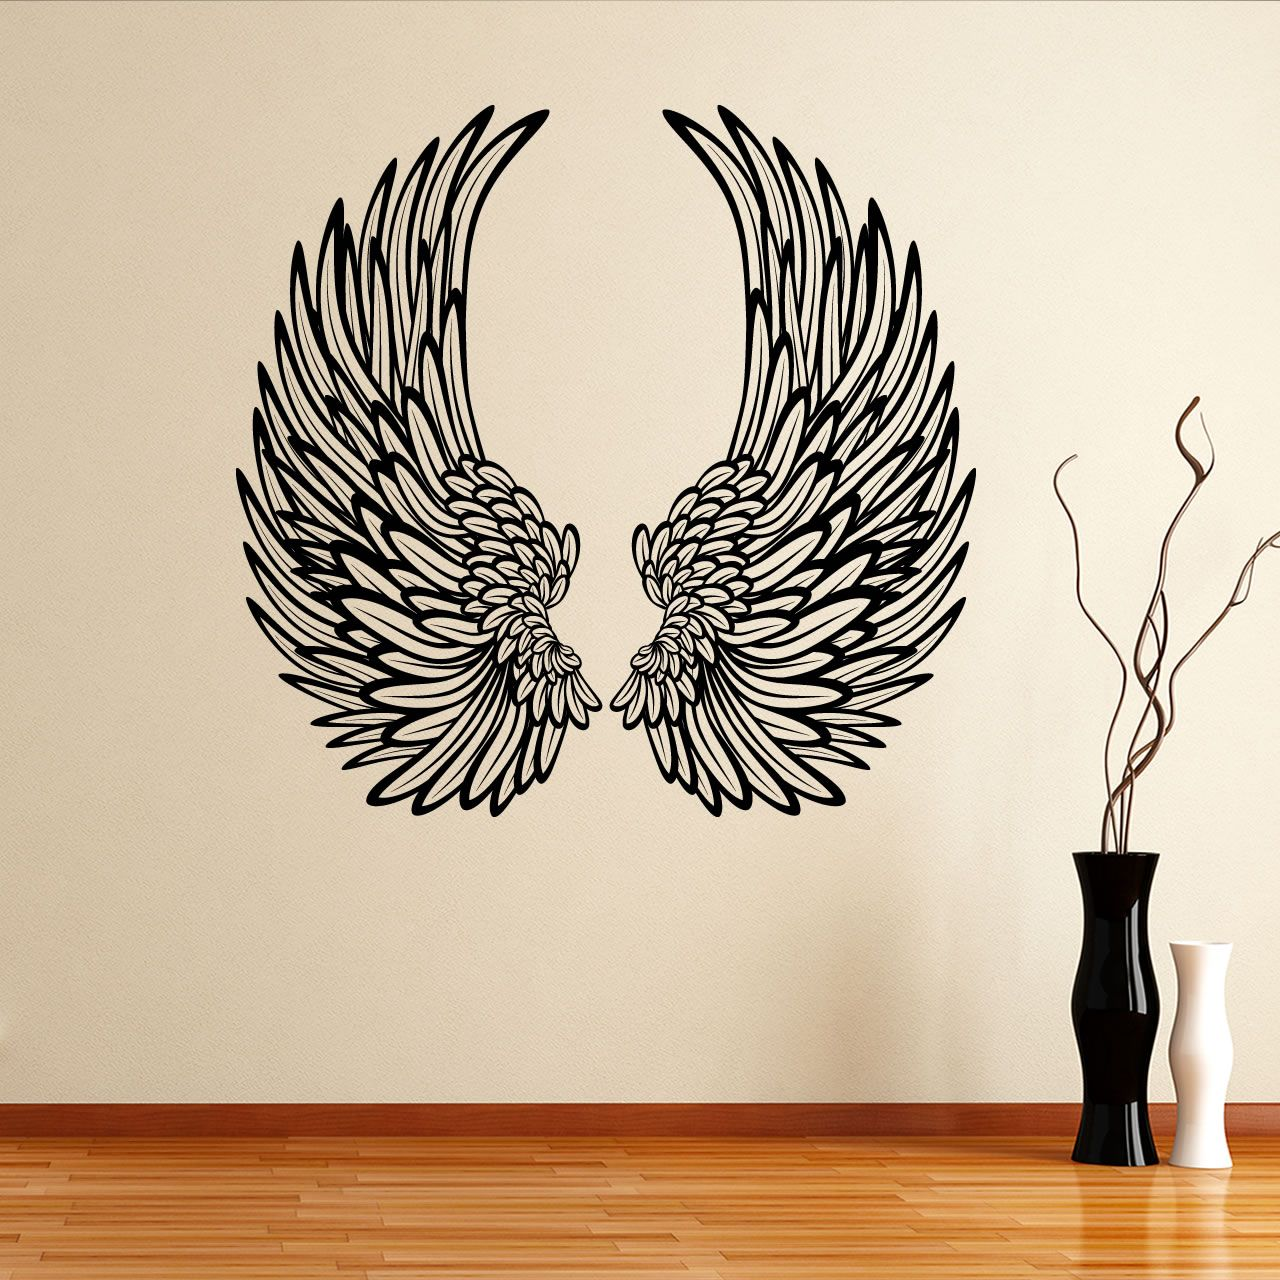 Angel Wall Decals | Details about Angel Wings With Feathers Wall Stickers / Wall  Decals